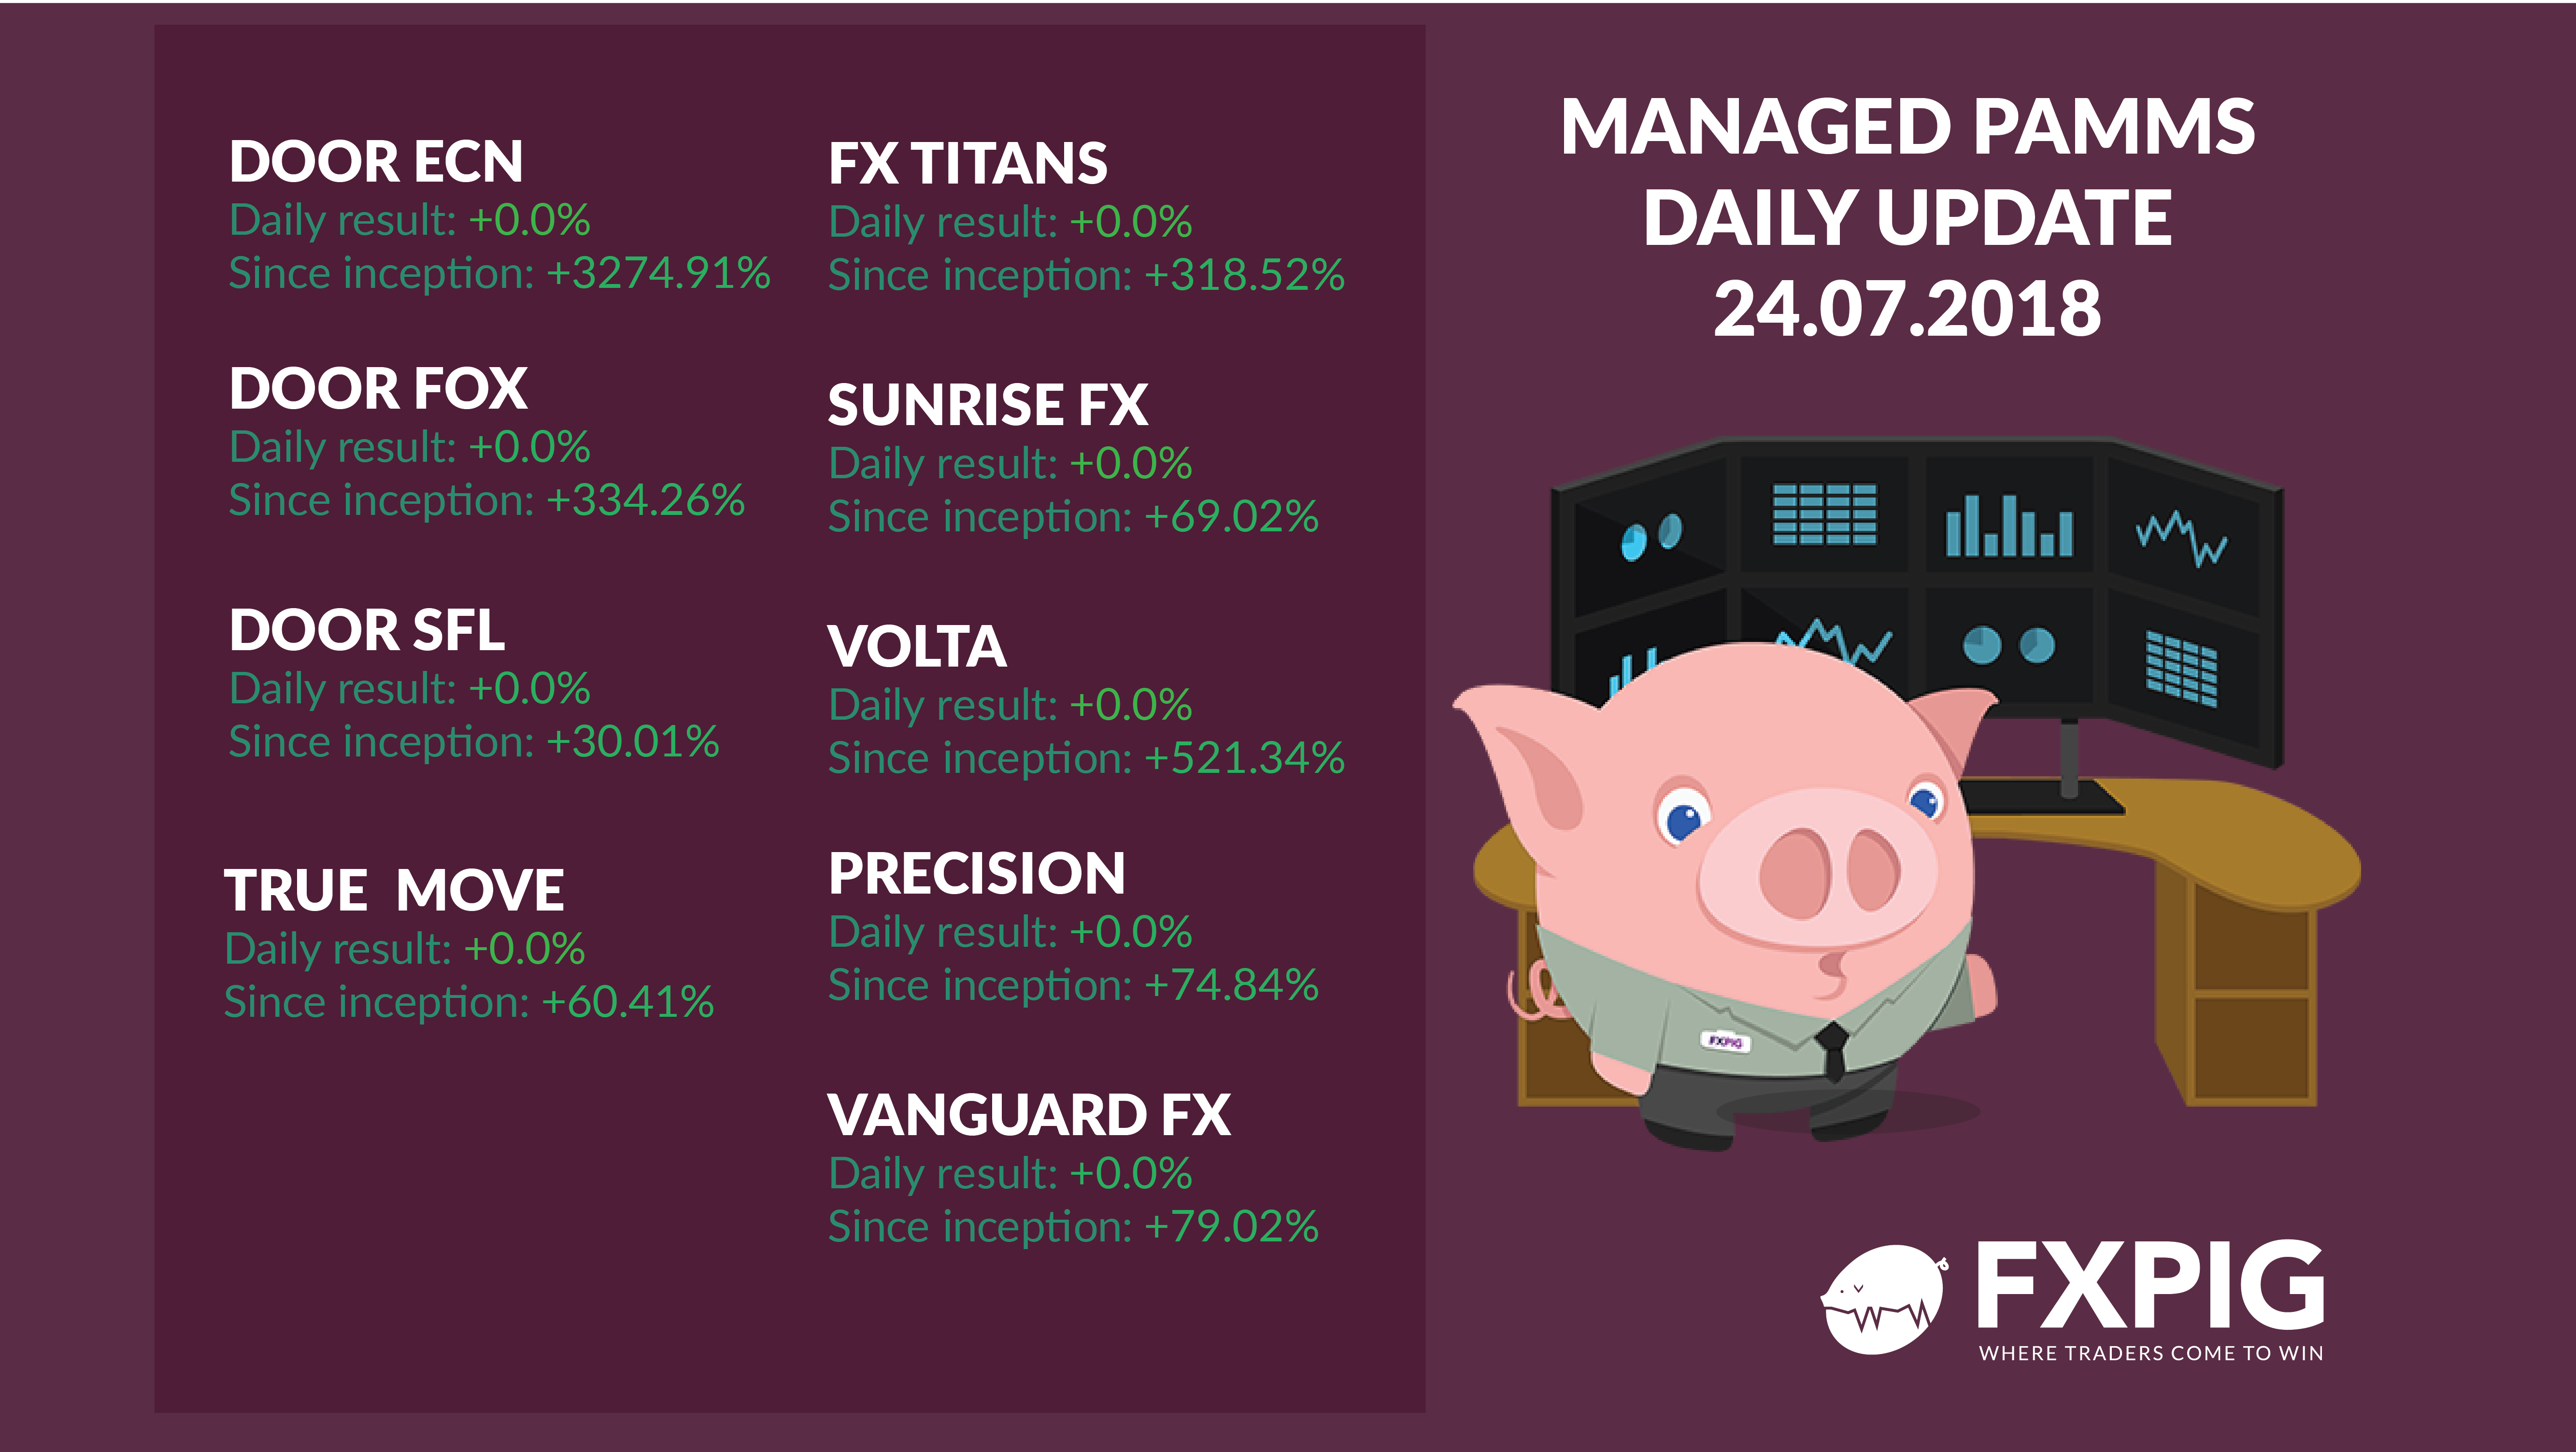 FOREX_managed-daily-accounds2407_FXPIG